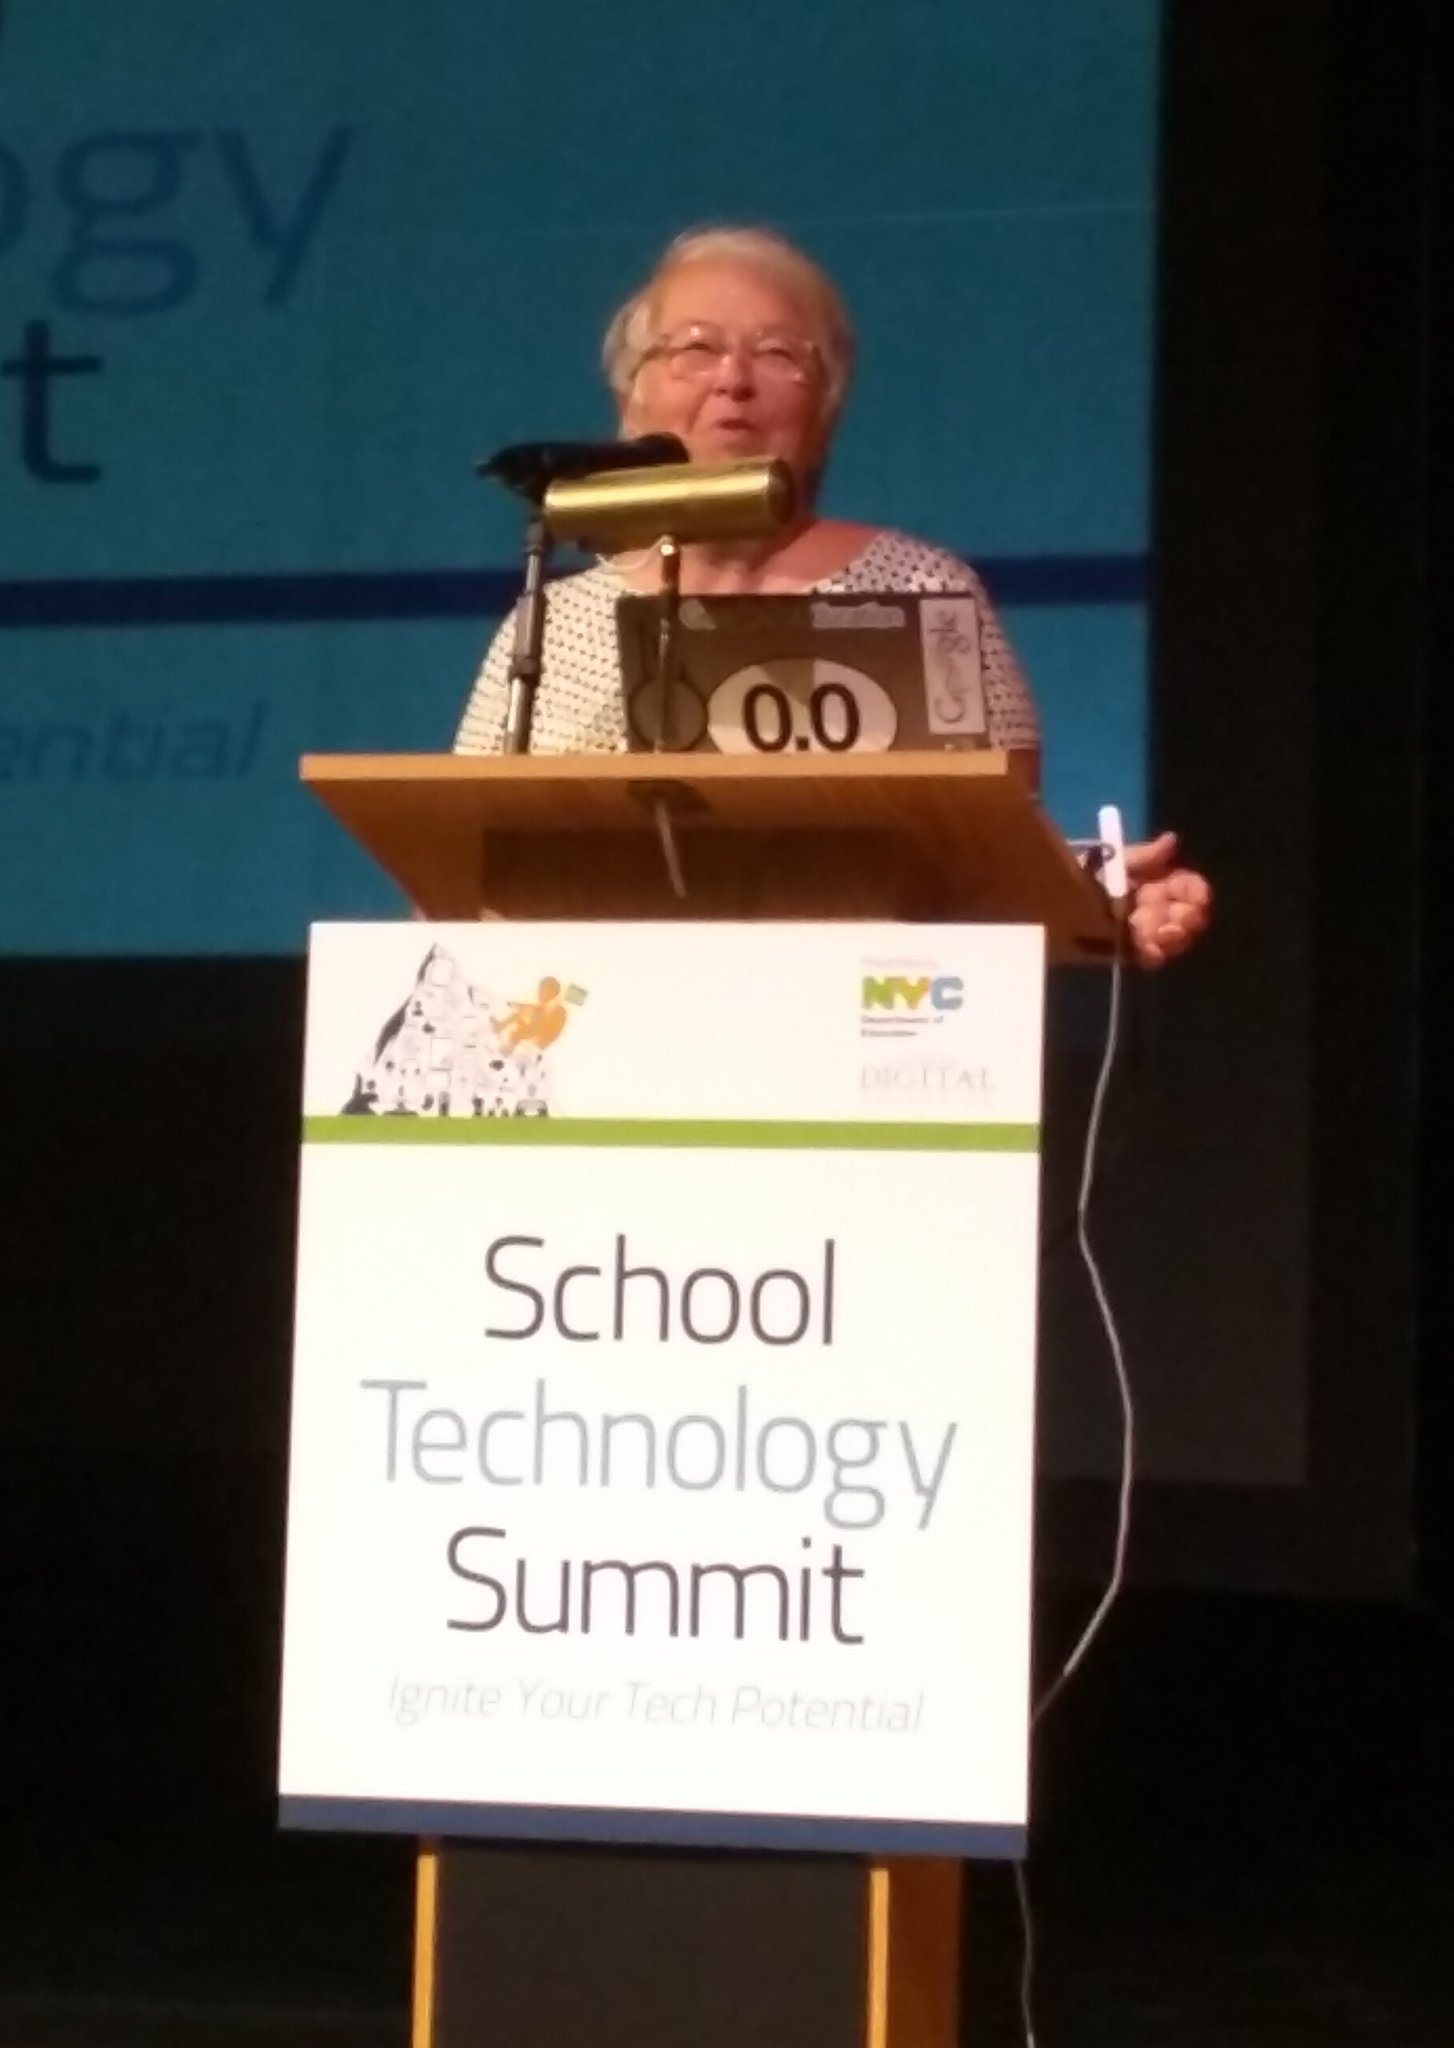 Chancellor Carmen Farina at NYC Schools Technology Summit #NYCSchoolsTech says use tech for equity and excellence https://t.co/3q3ookadSf